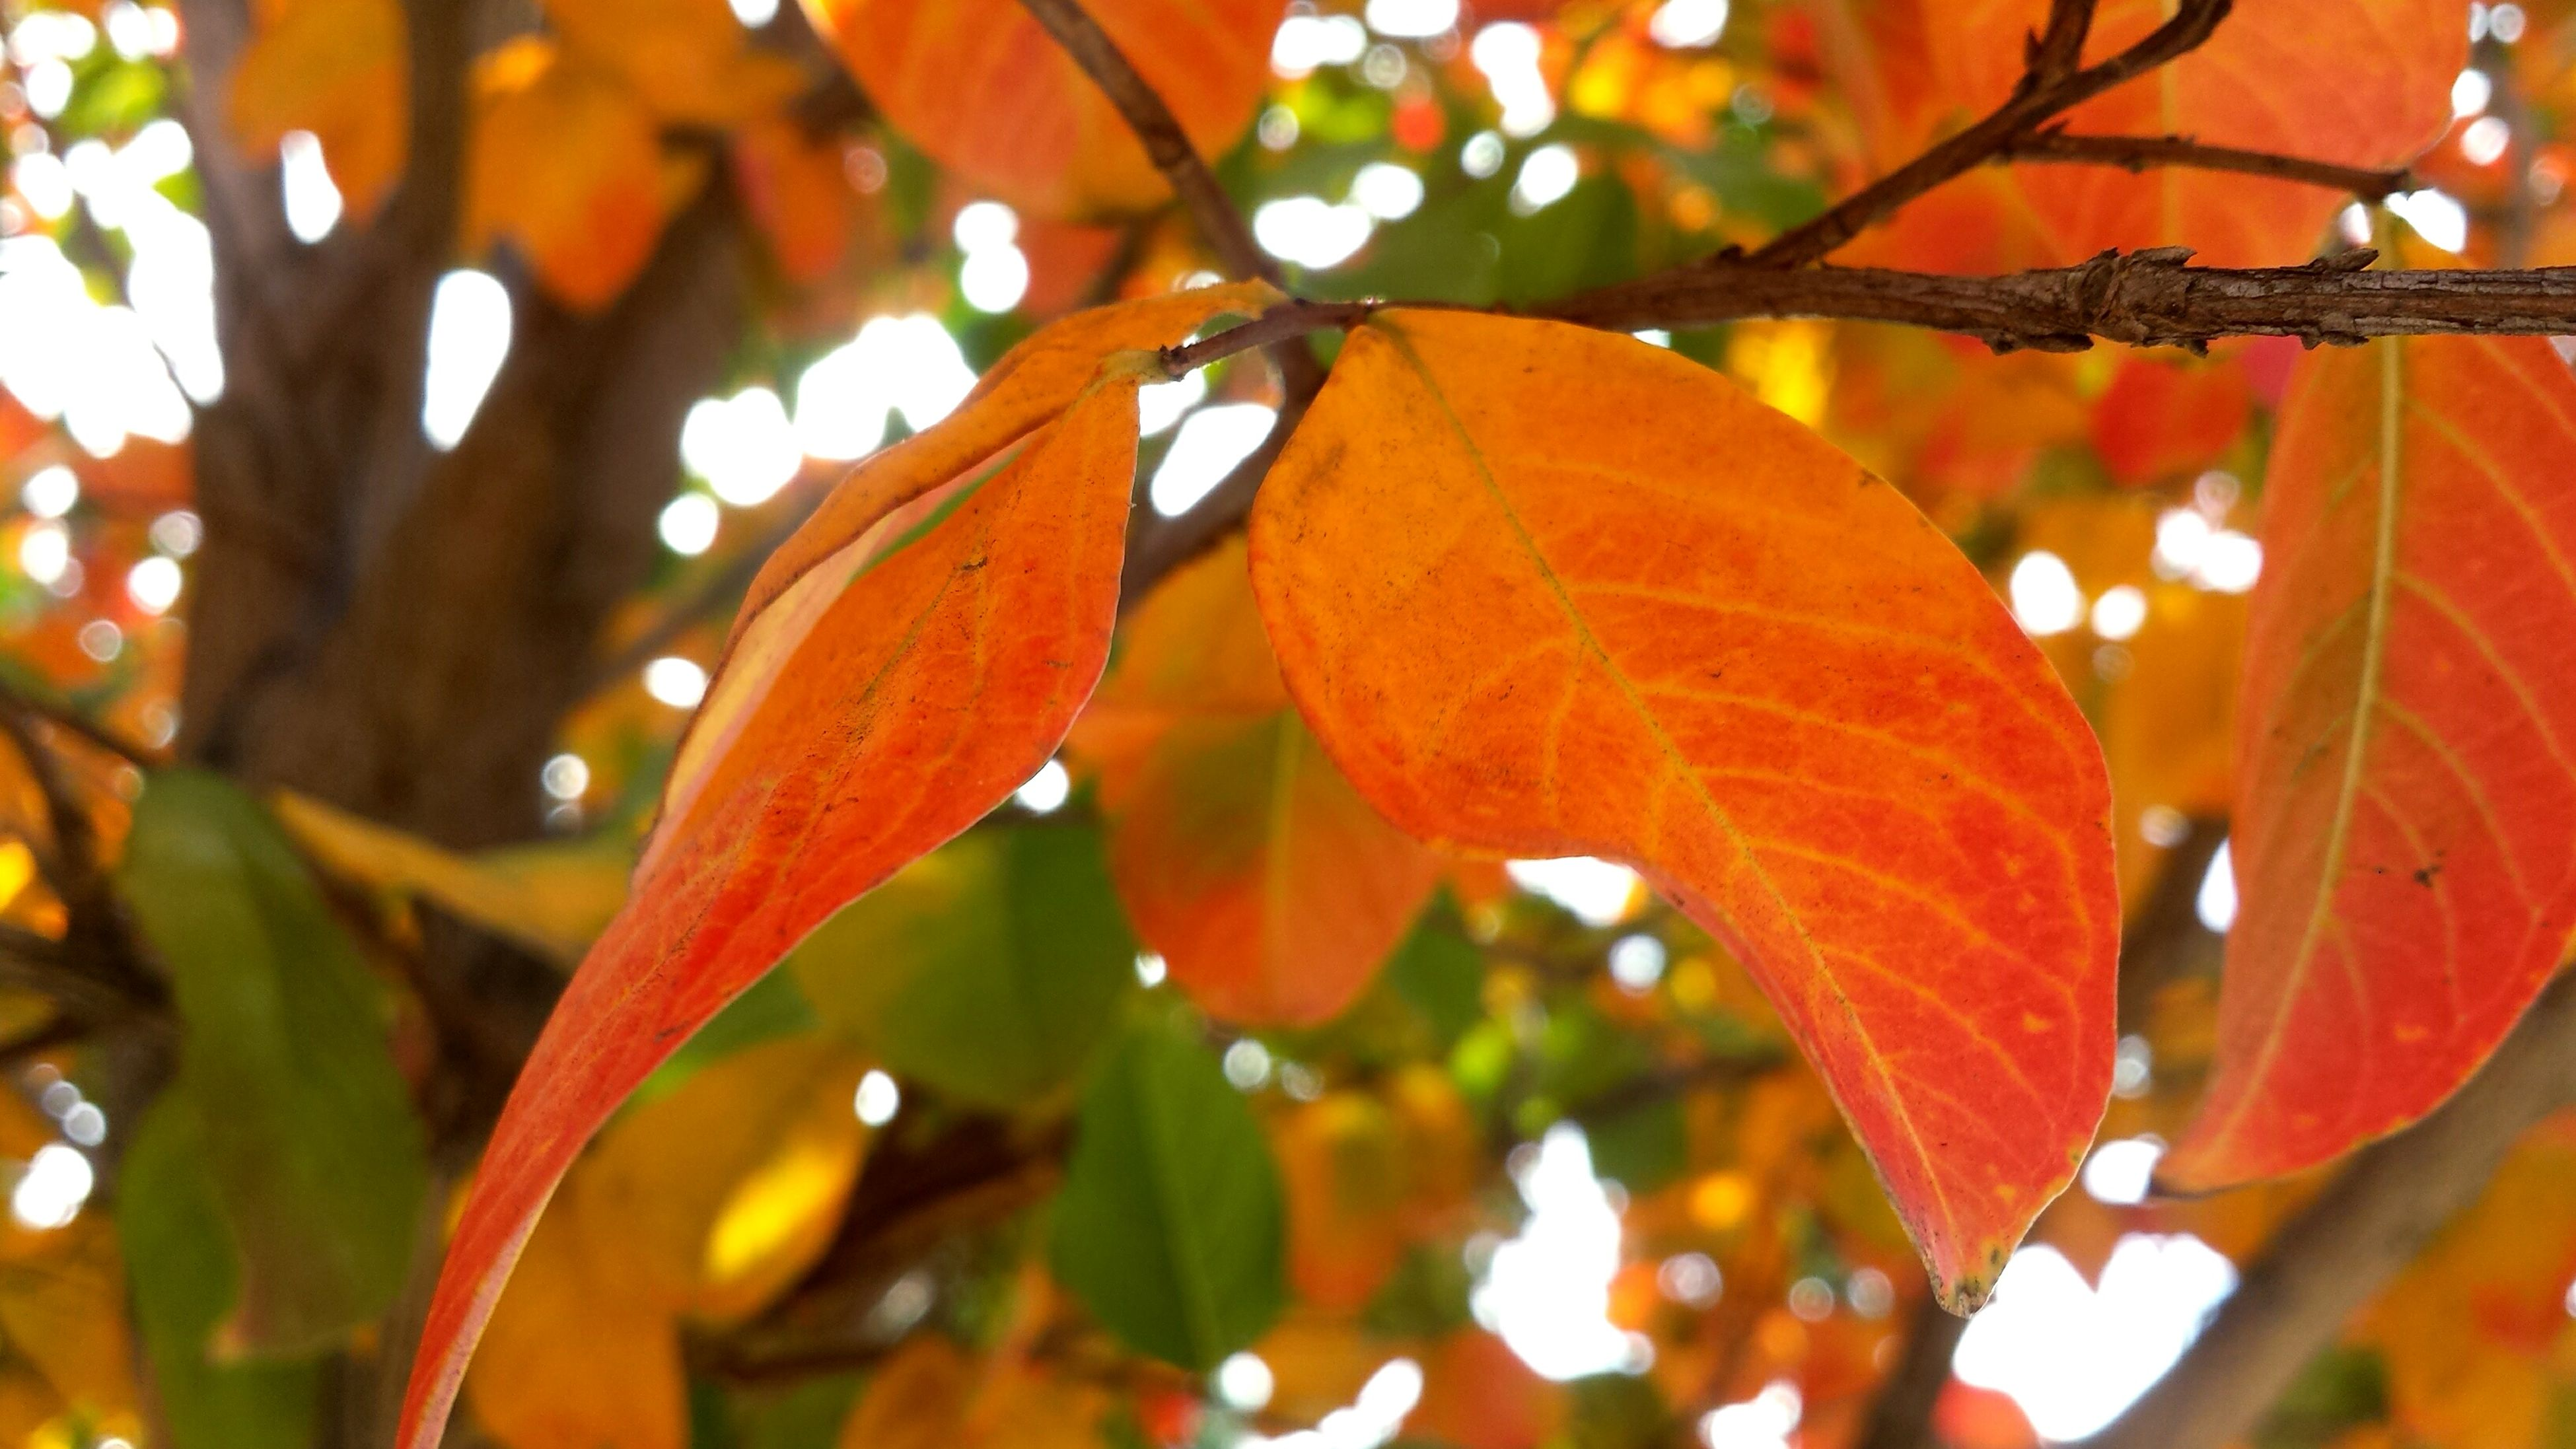 leaf, focus on foreground, growth, branch, close-up, nature, autumn, leaf vein, leaves, tree, orange color, season, change, beauty in nature, sunlight, selective focus, plant, twig, outdoors, day